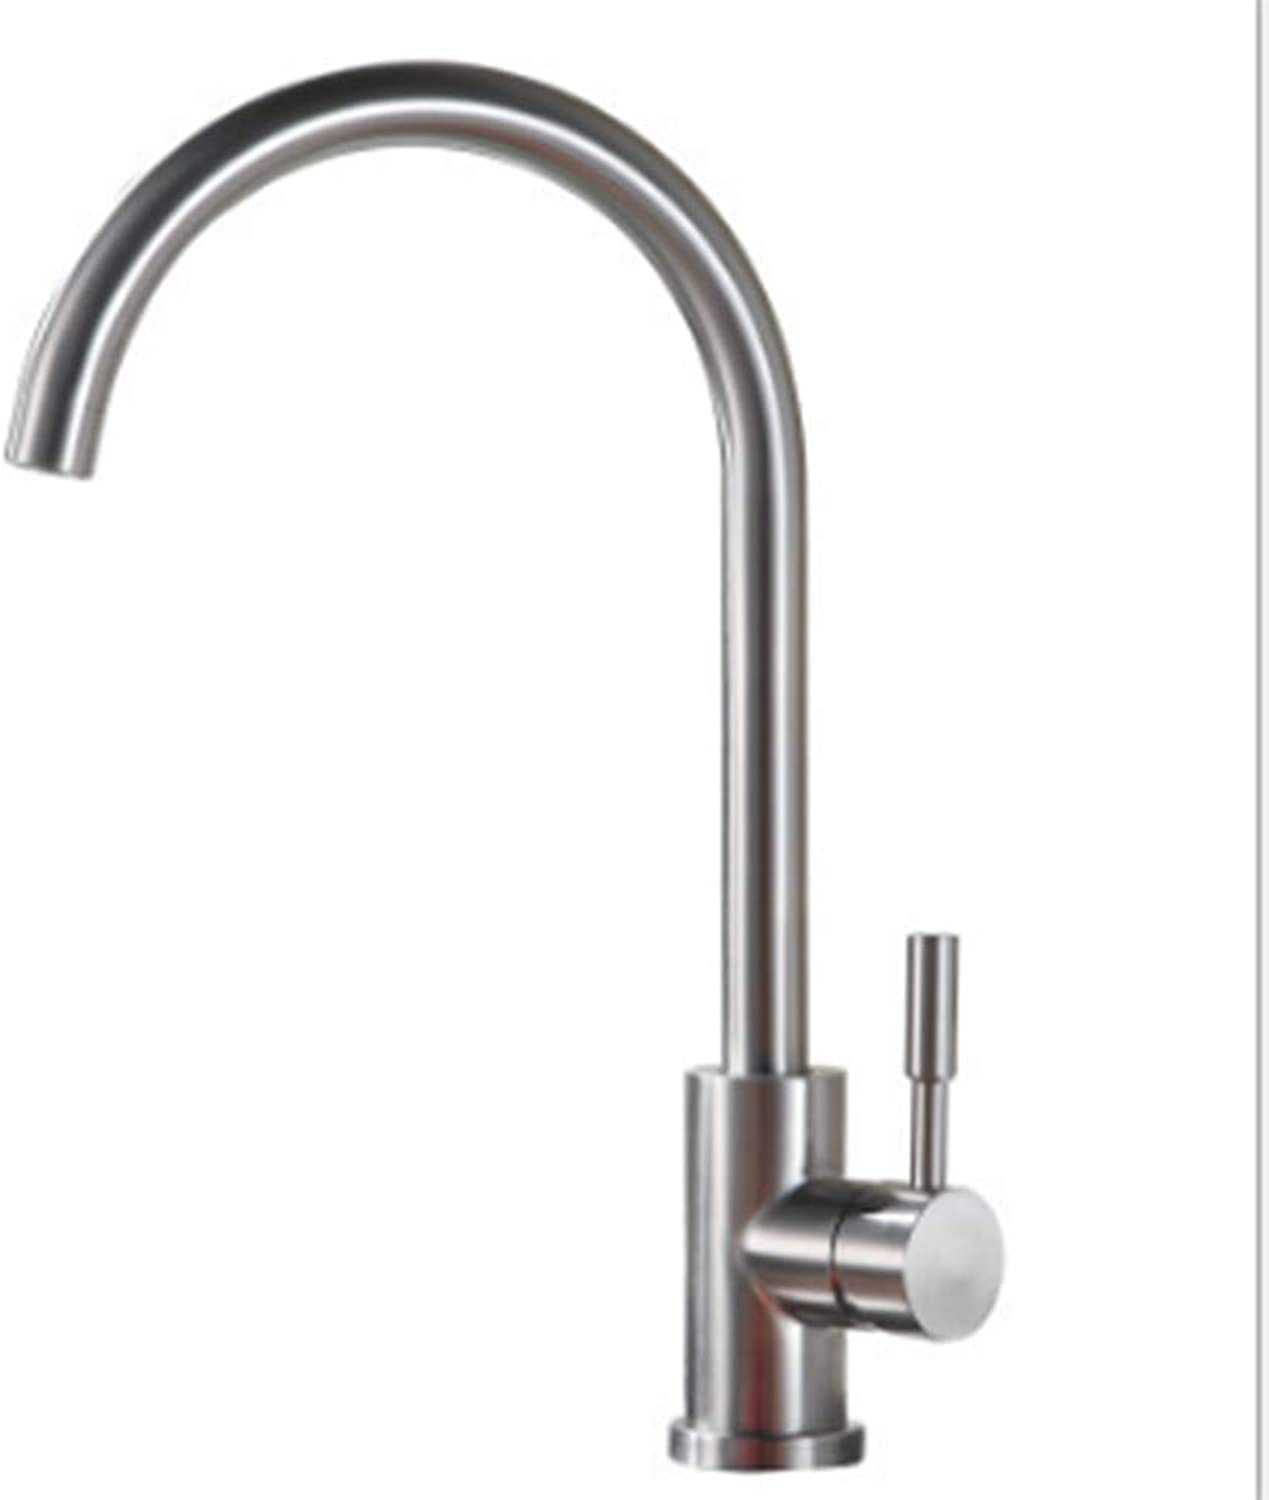 SEEKSUNG Kitchen faucet,Single Handle One Hole Brushed Tall   -High Arc Deck Mounted Contemporary Kitchen Taps Stainless Steel, For Kitchen Bathroom Sink